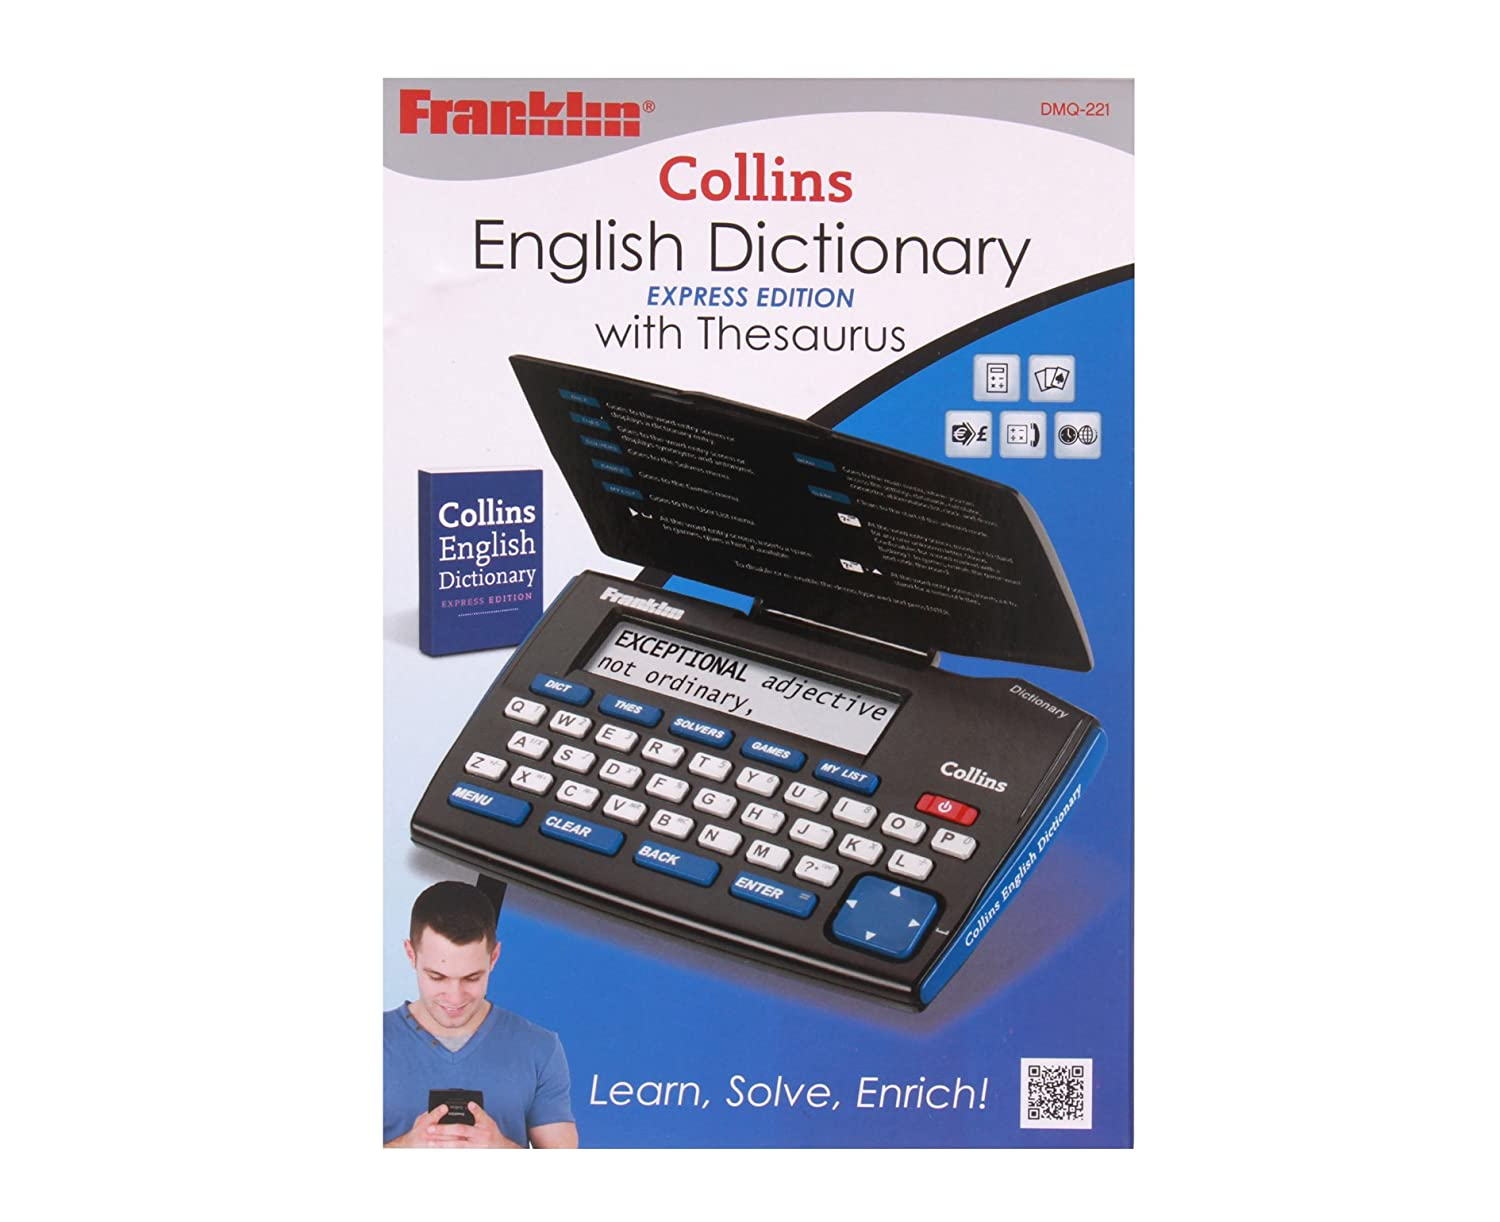 Franklin Gothic English Dictionary amazon